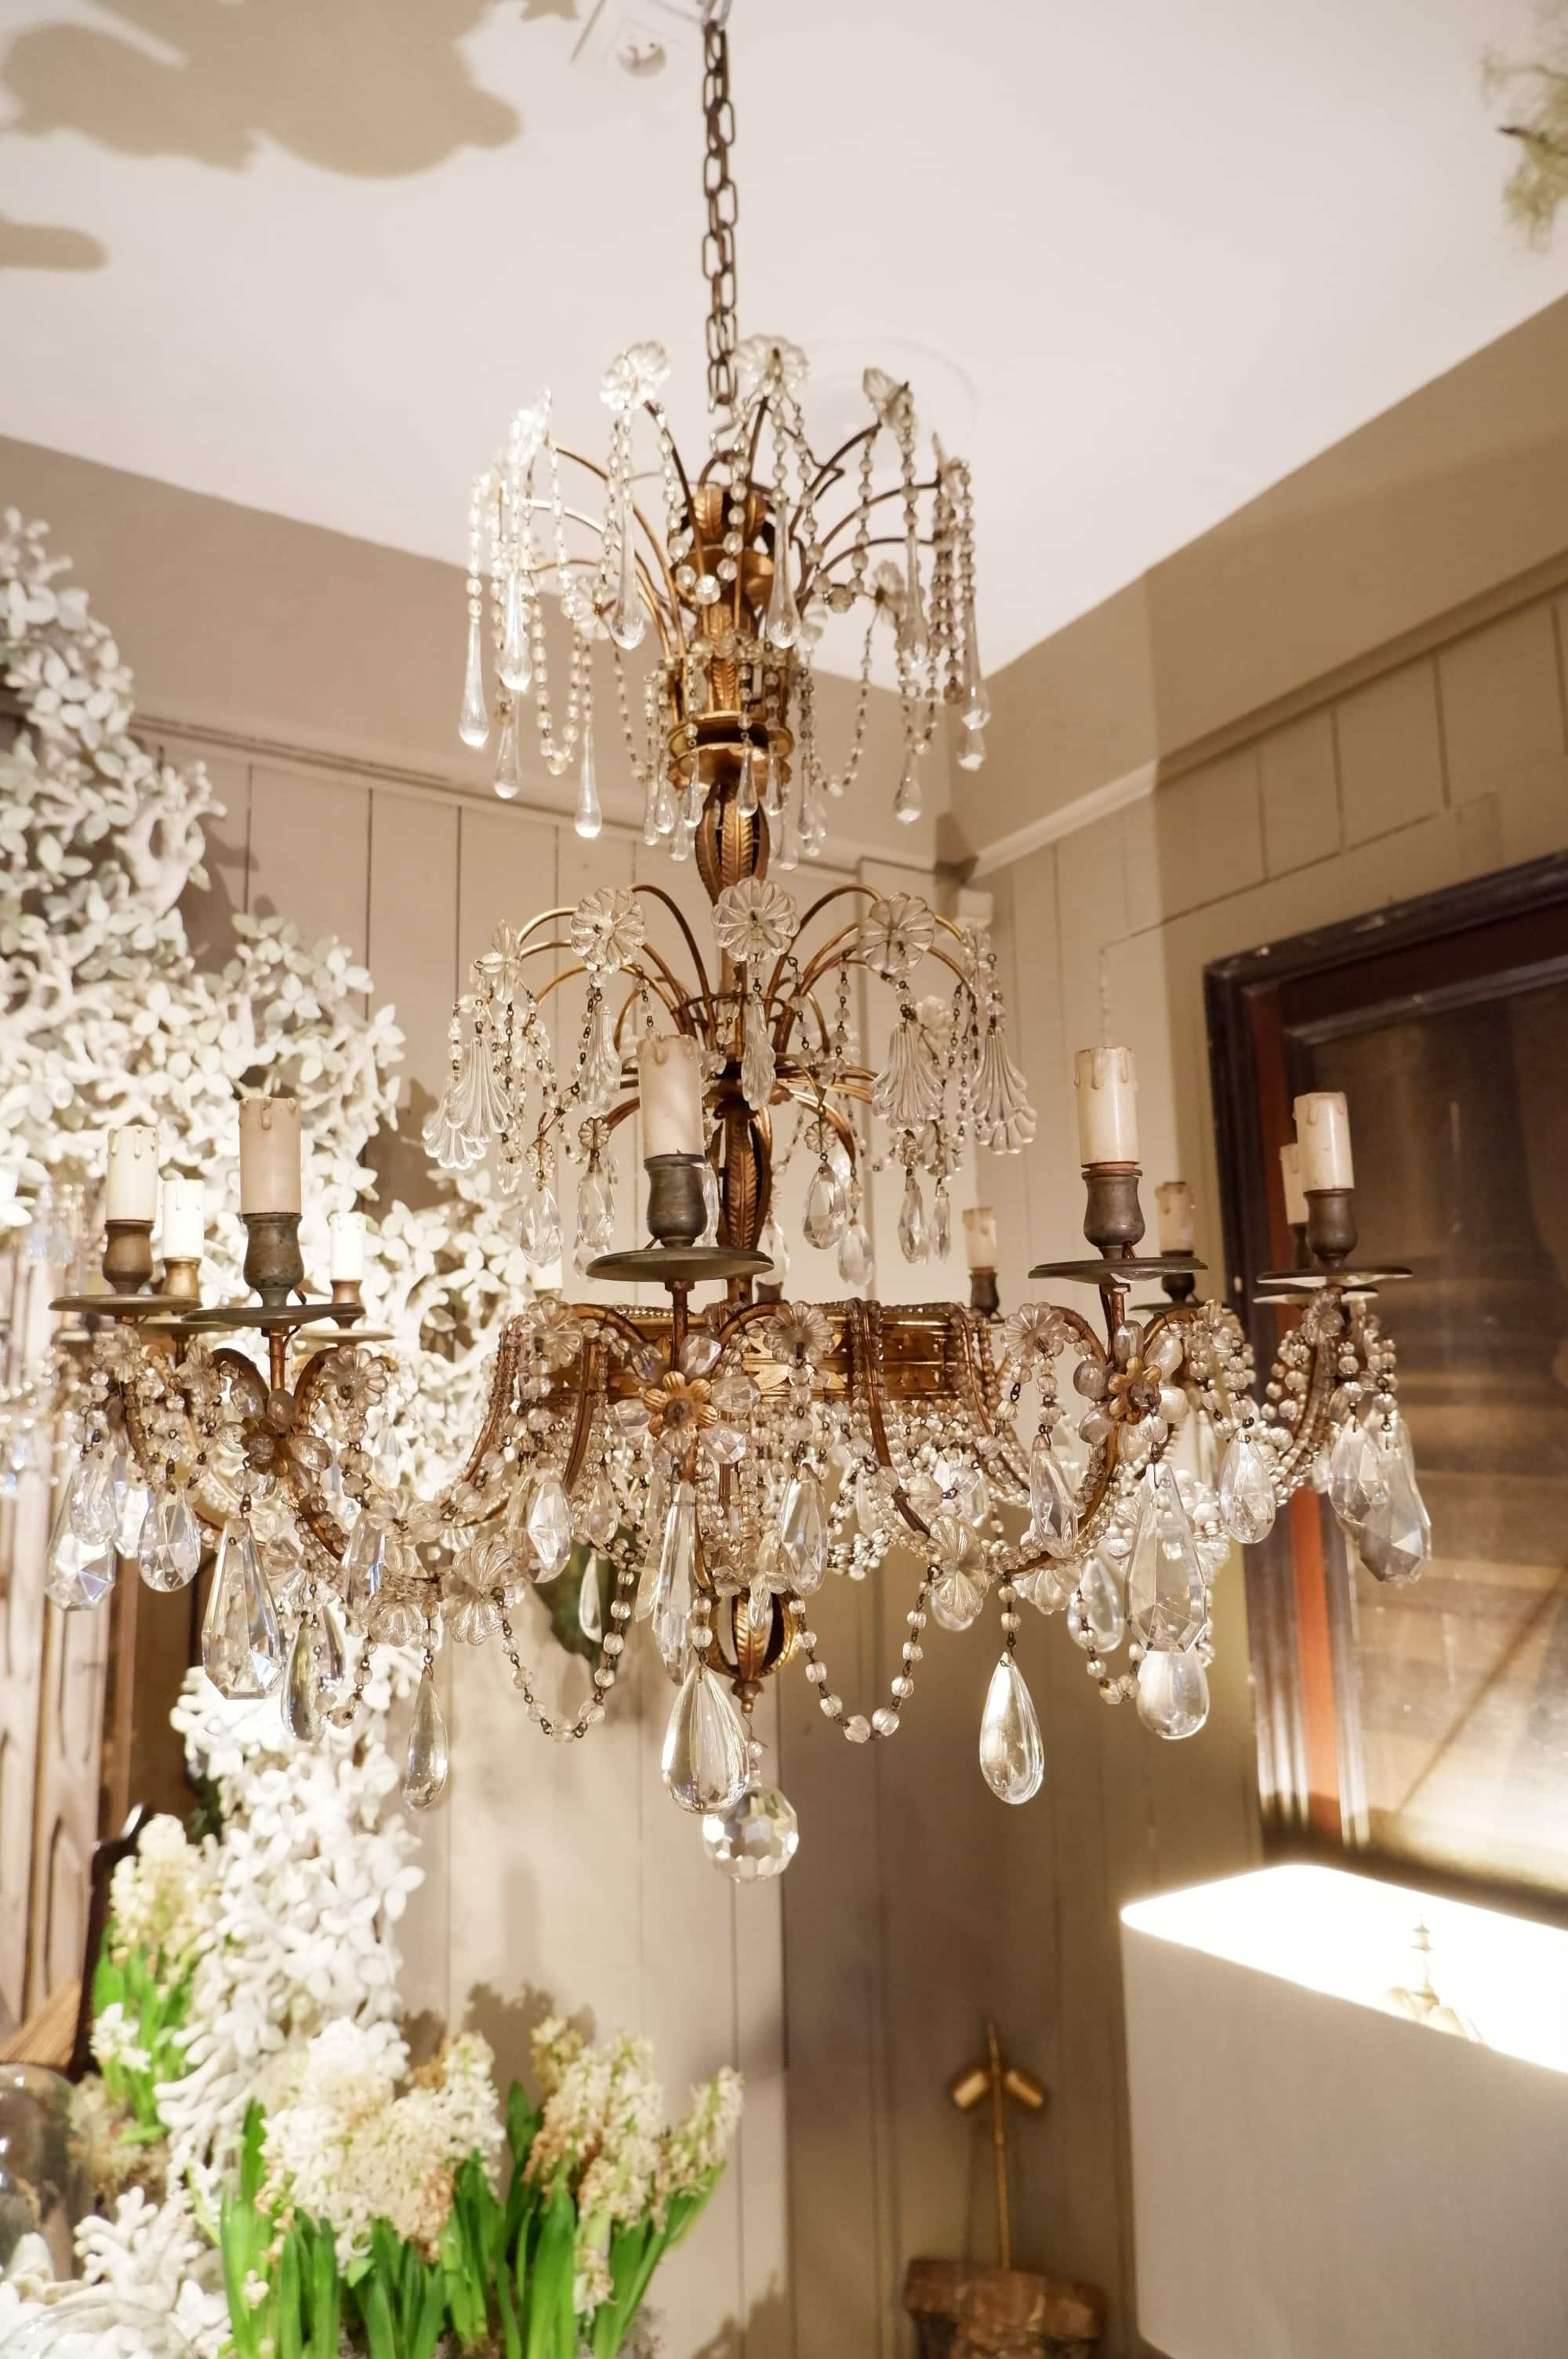 Large Italian chandelier in gilt metal and glass ca. 1850